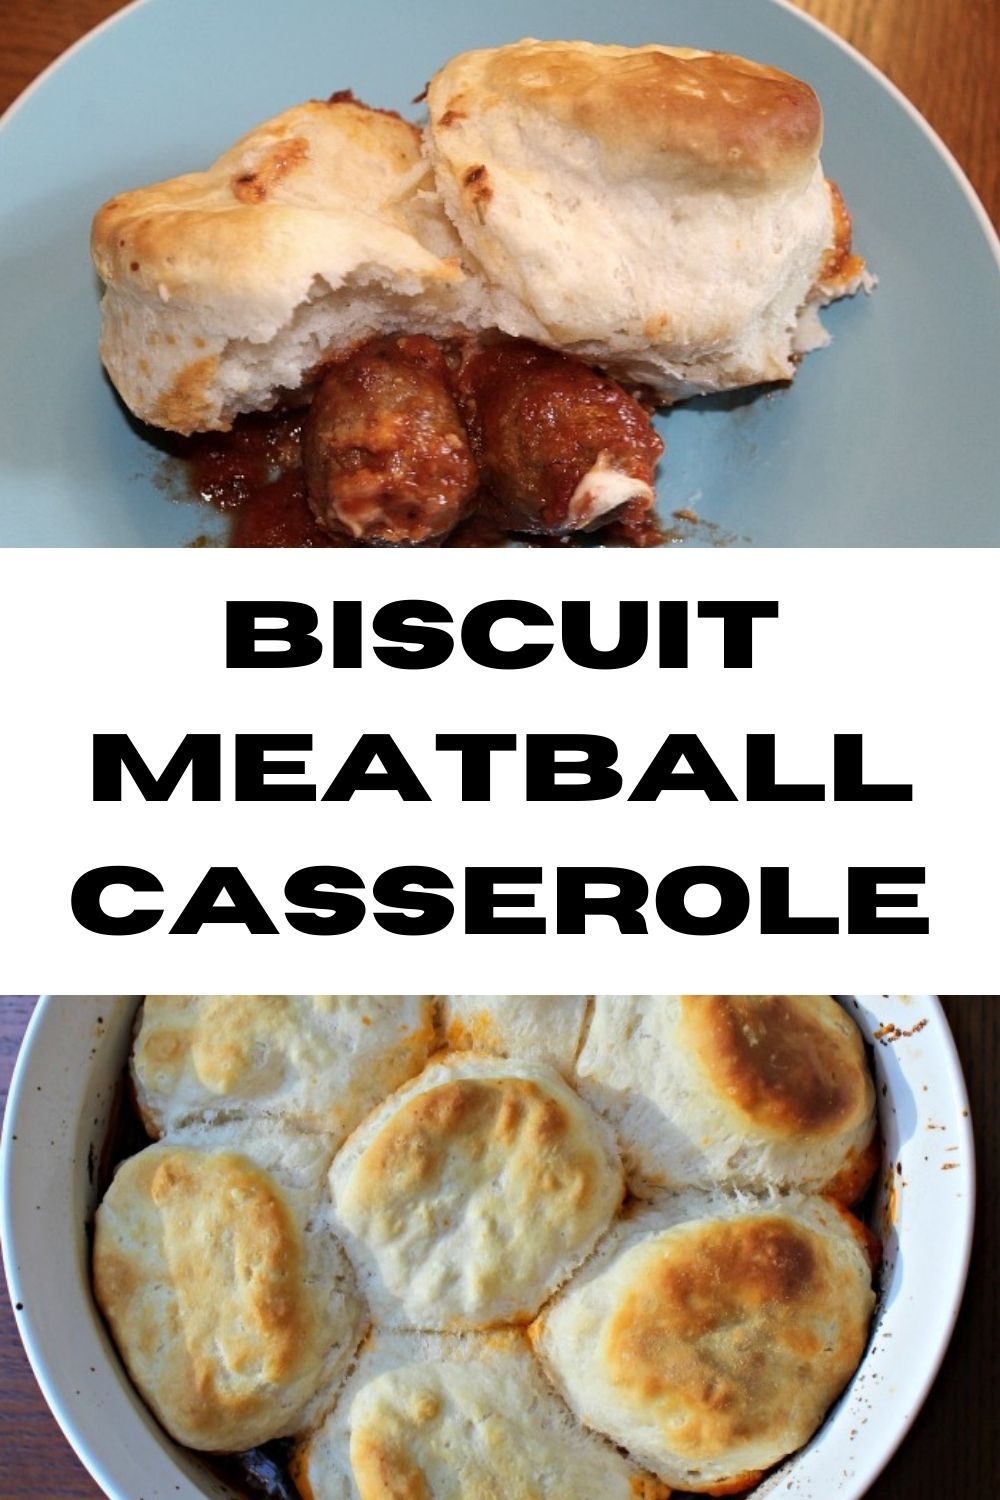 This Biscuit Meatball Casserole is so easy to make for dinner and the kids are sure to love it as well!! Perfect for a school night frugal dinner!